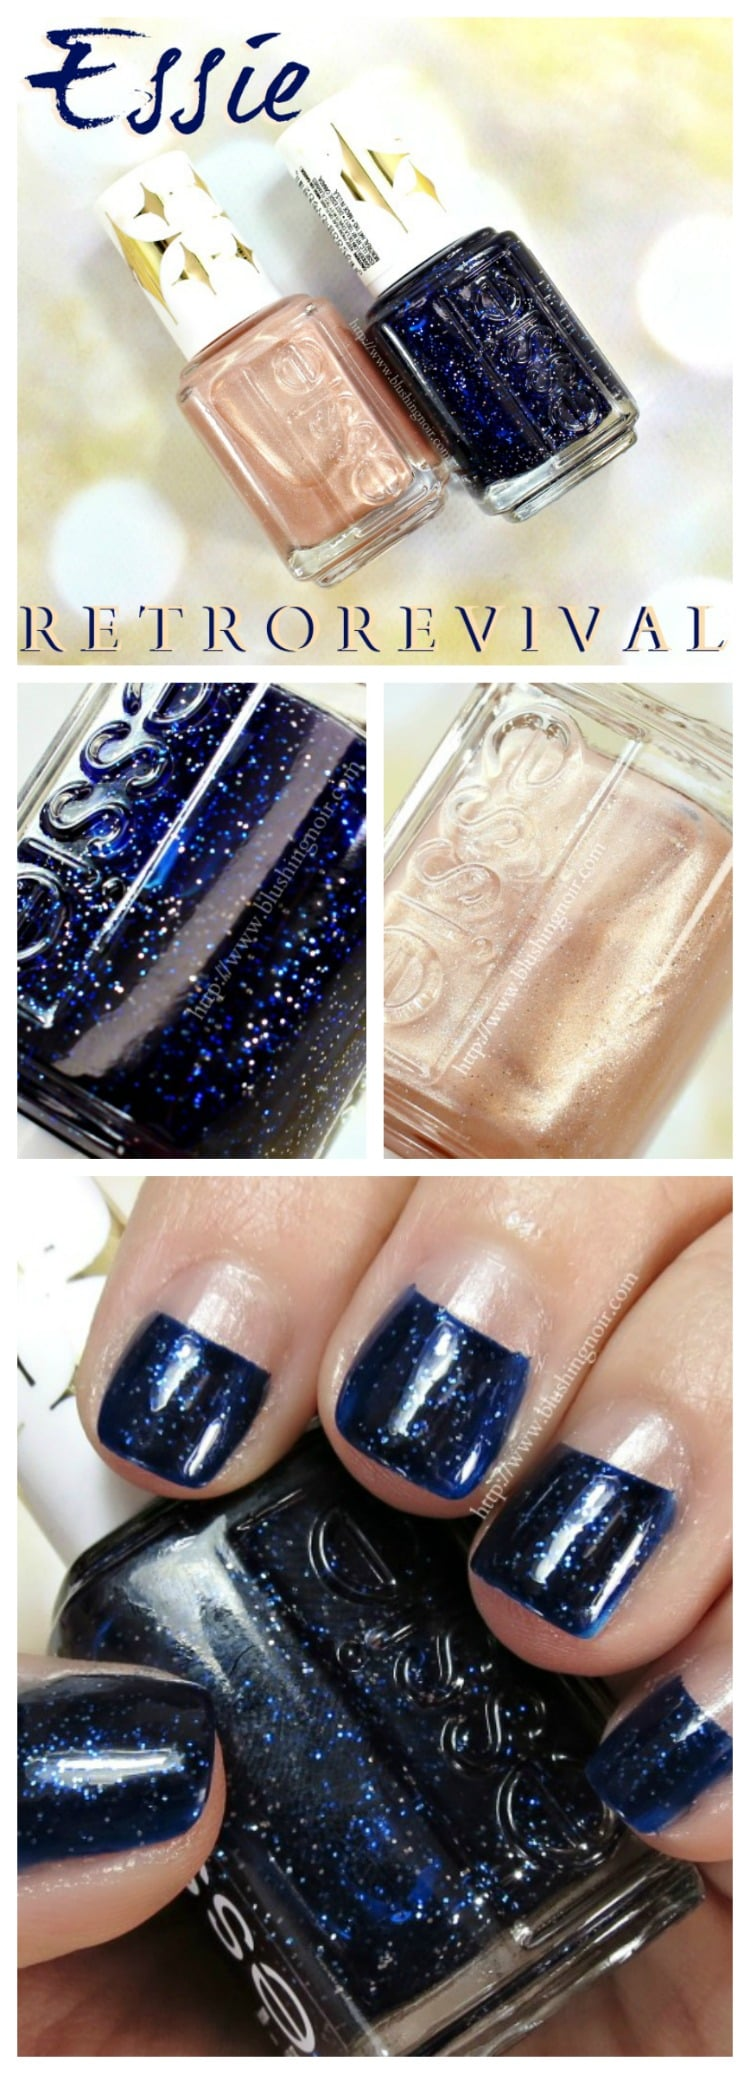 Essie Starry Starry Night Nail Polish Swatches Retro Revival Collection